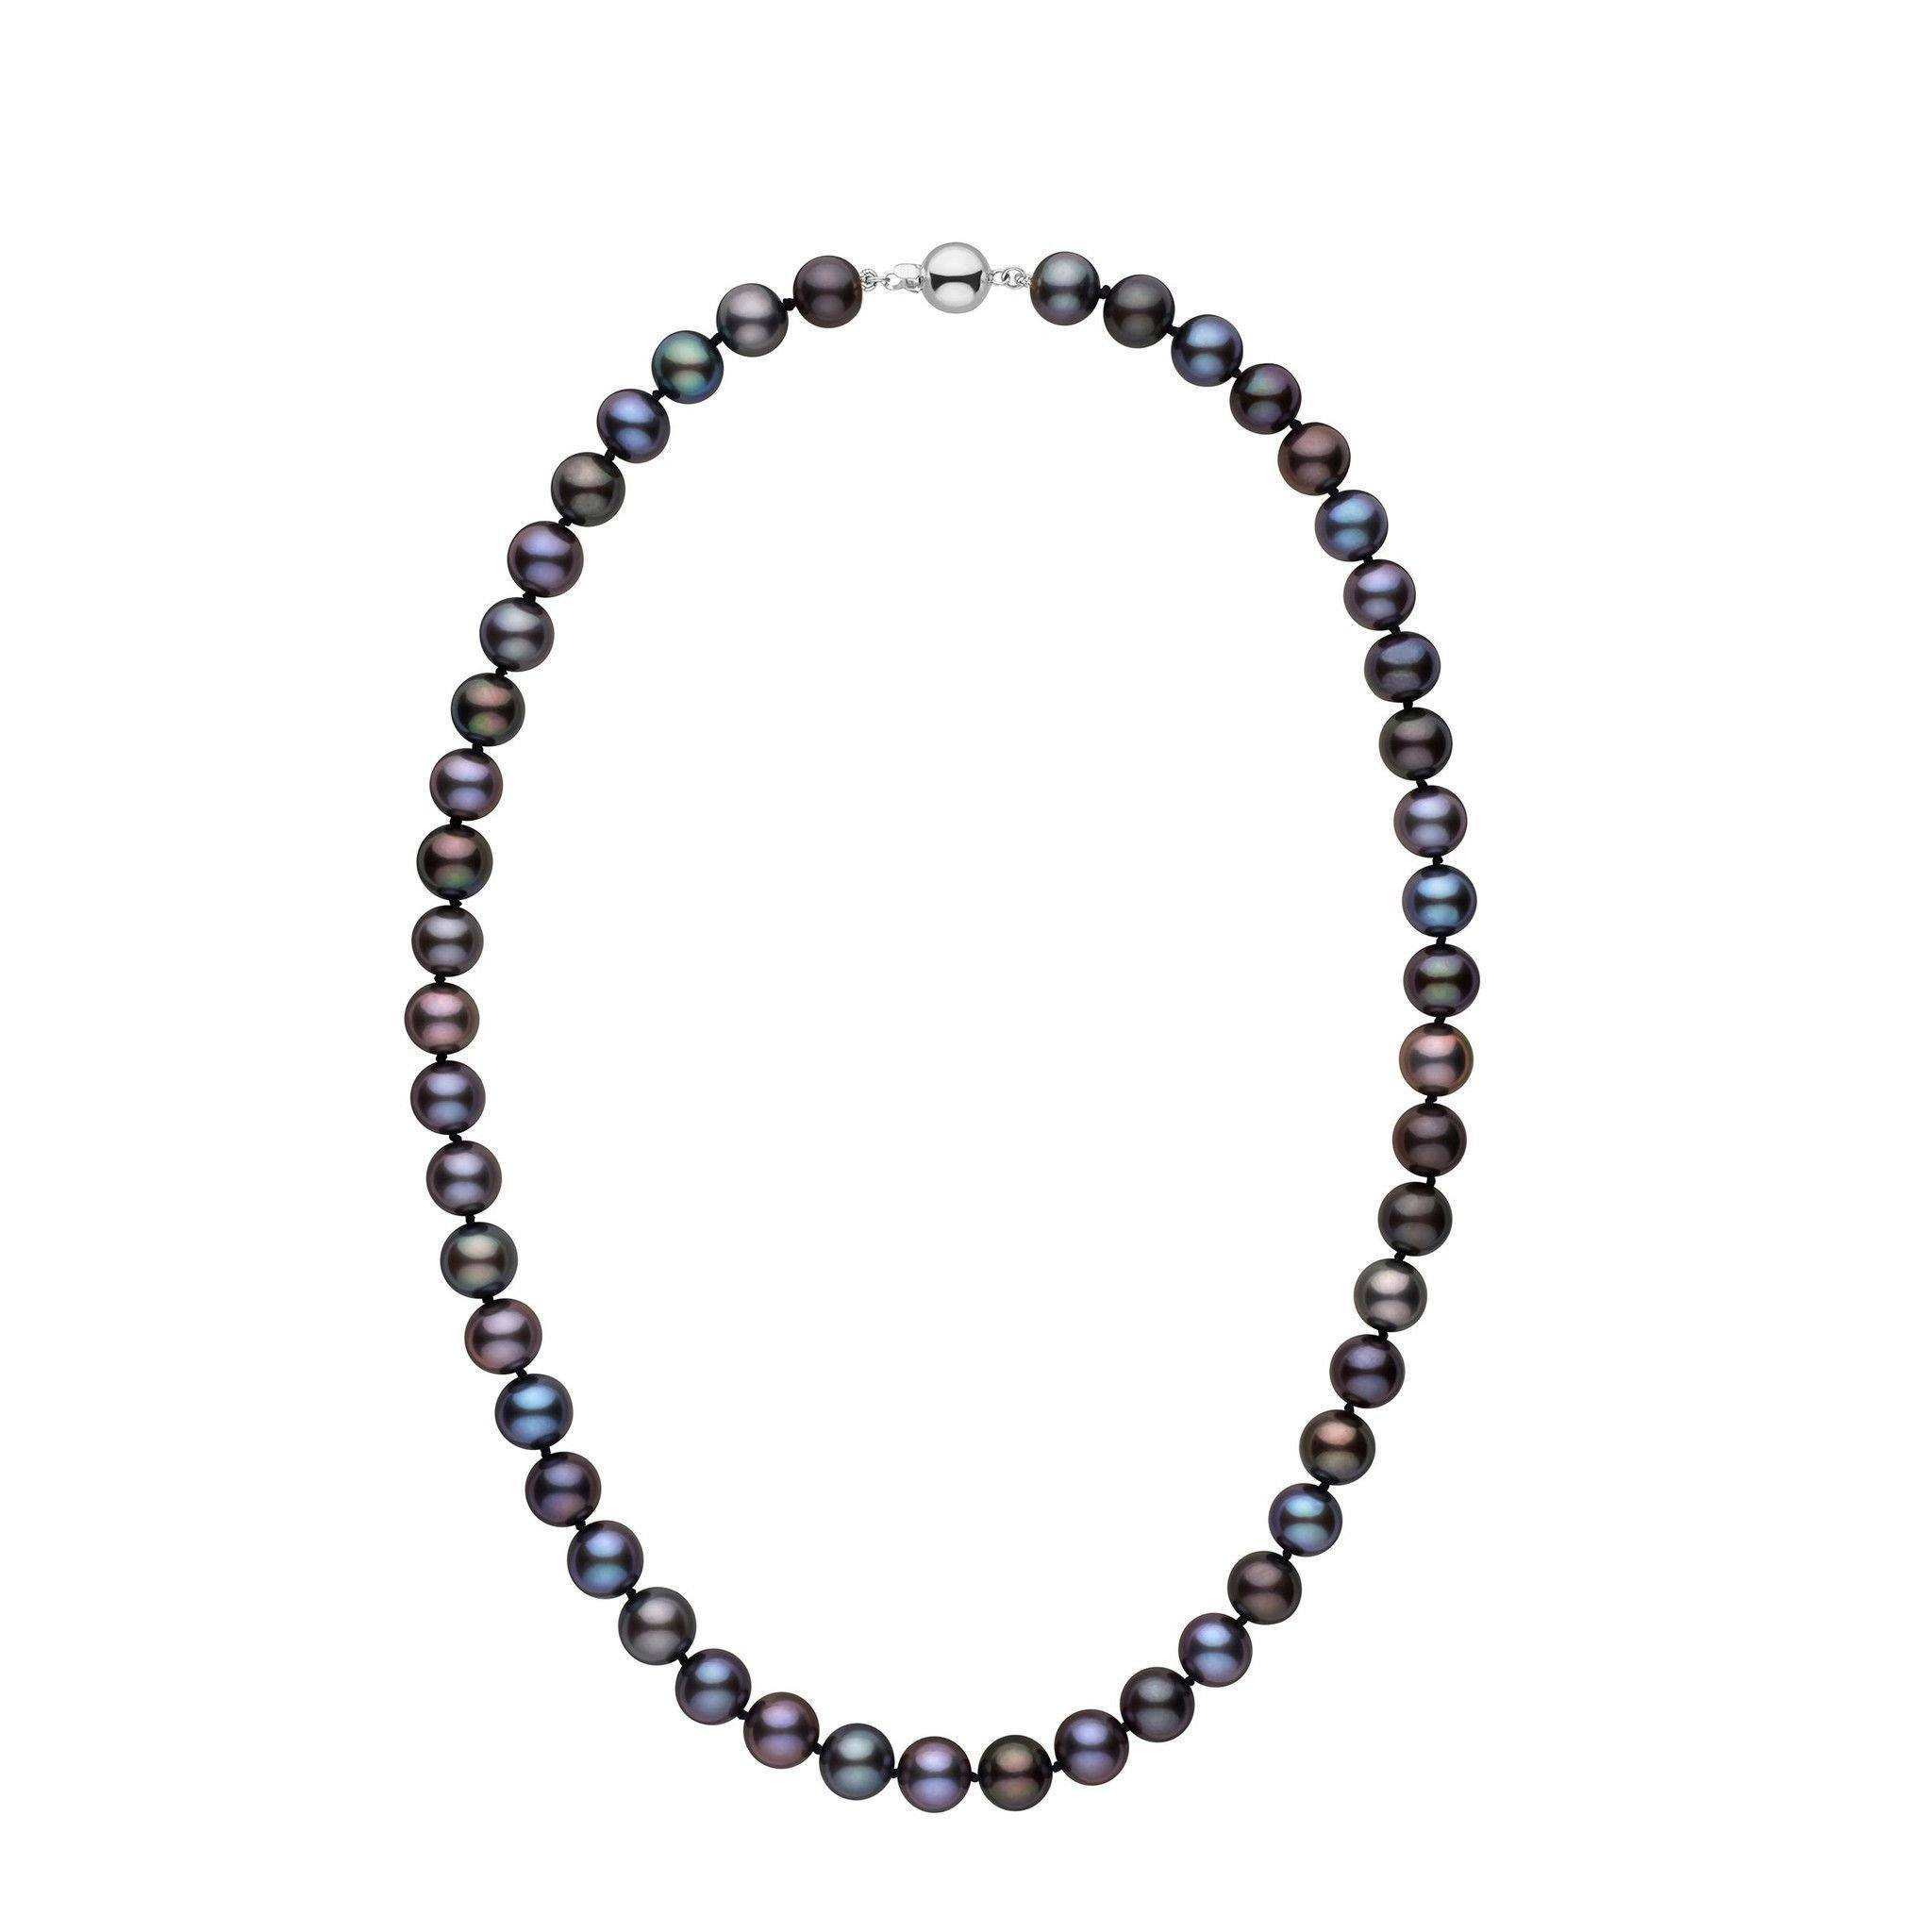 8.5-9.0 mm 18 Inch AA+ Black Freshwater Pearl Necklace